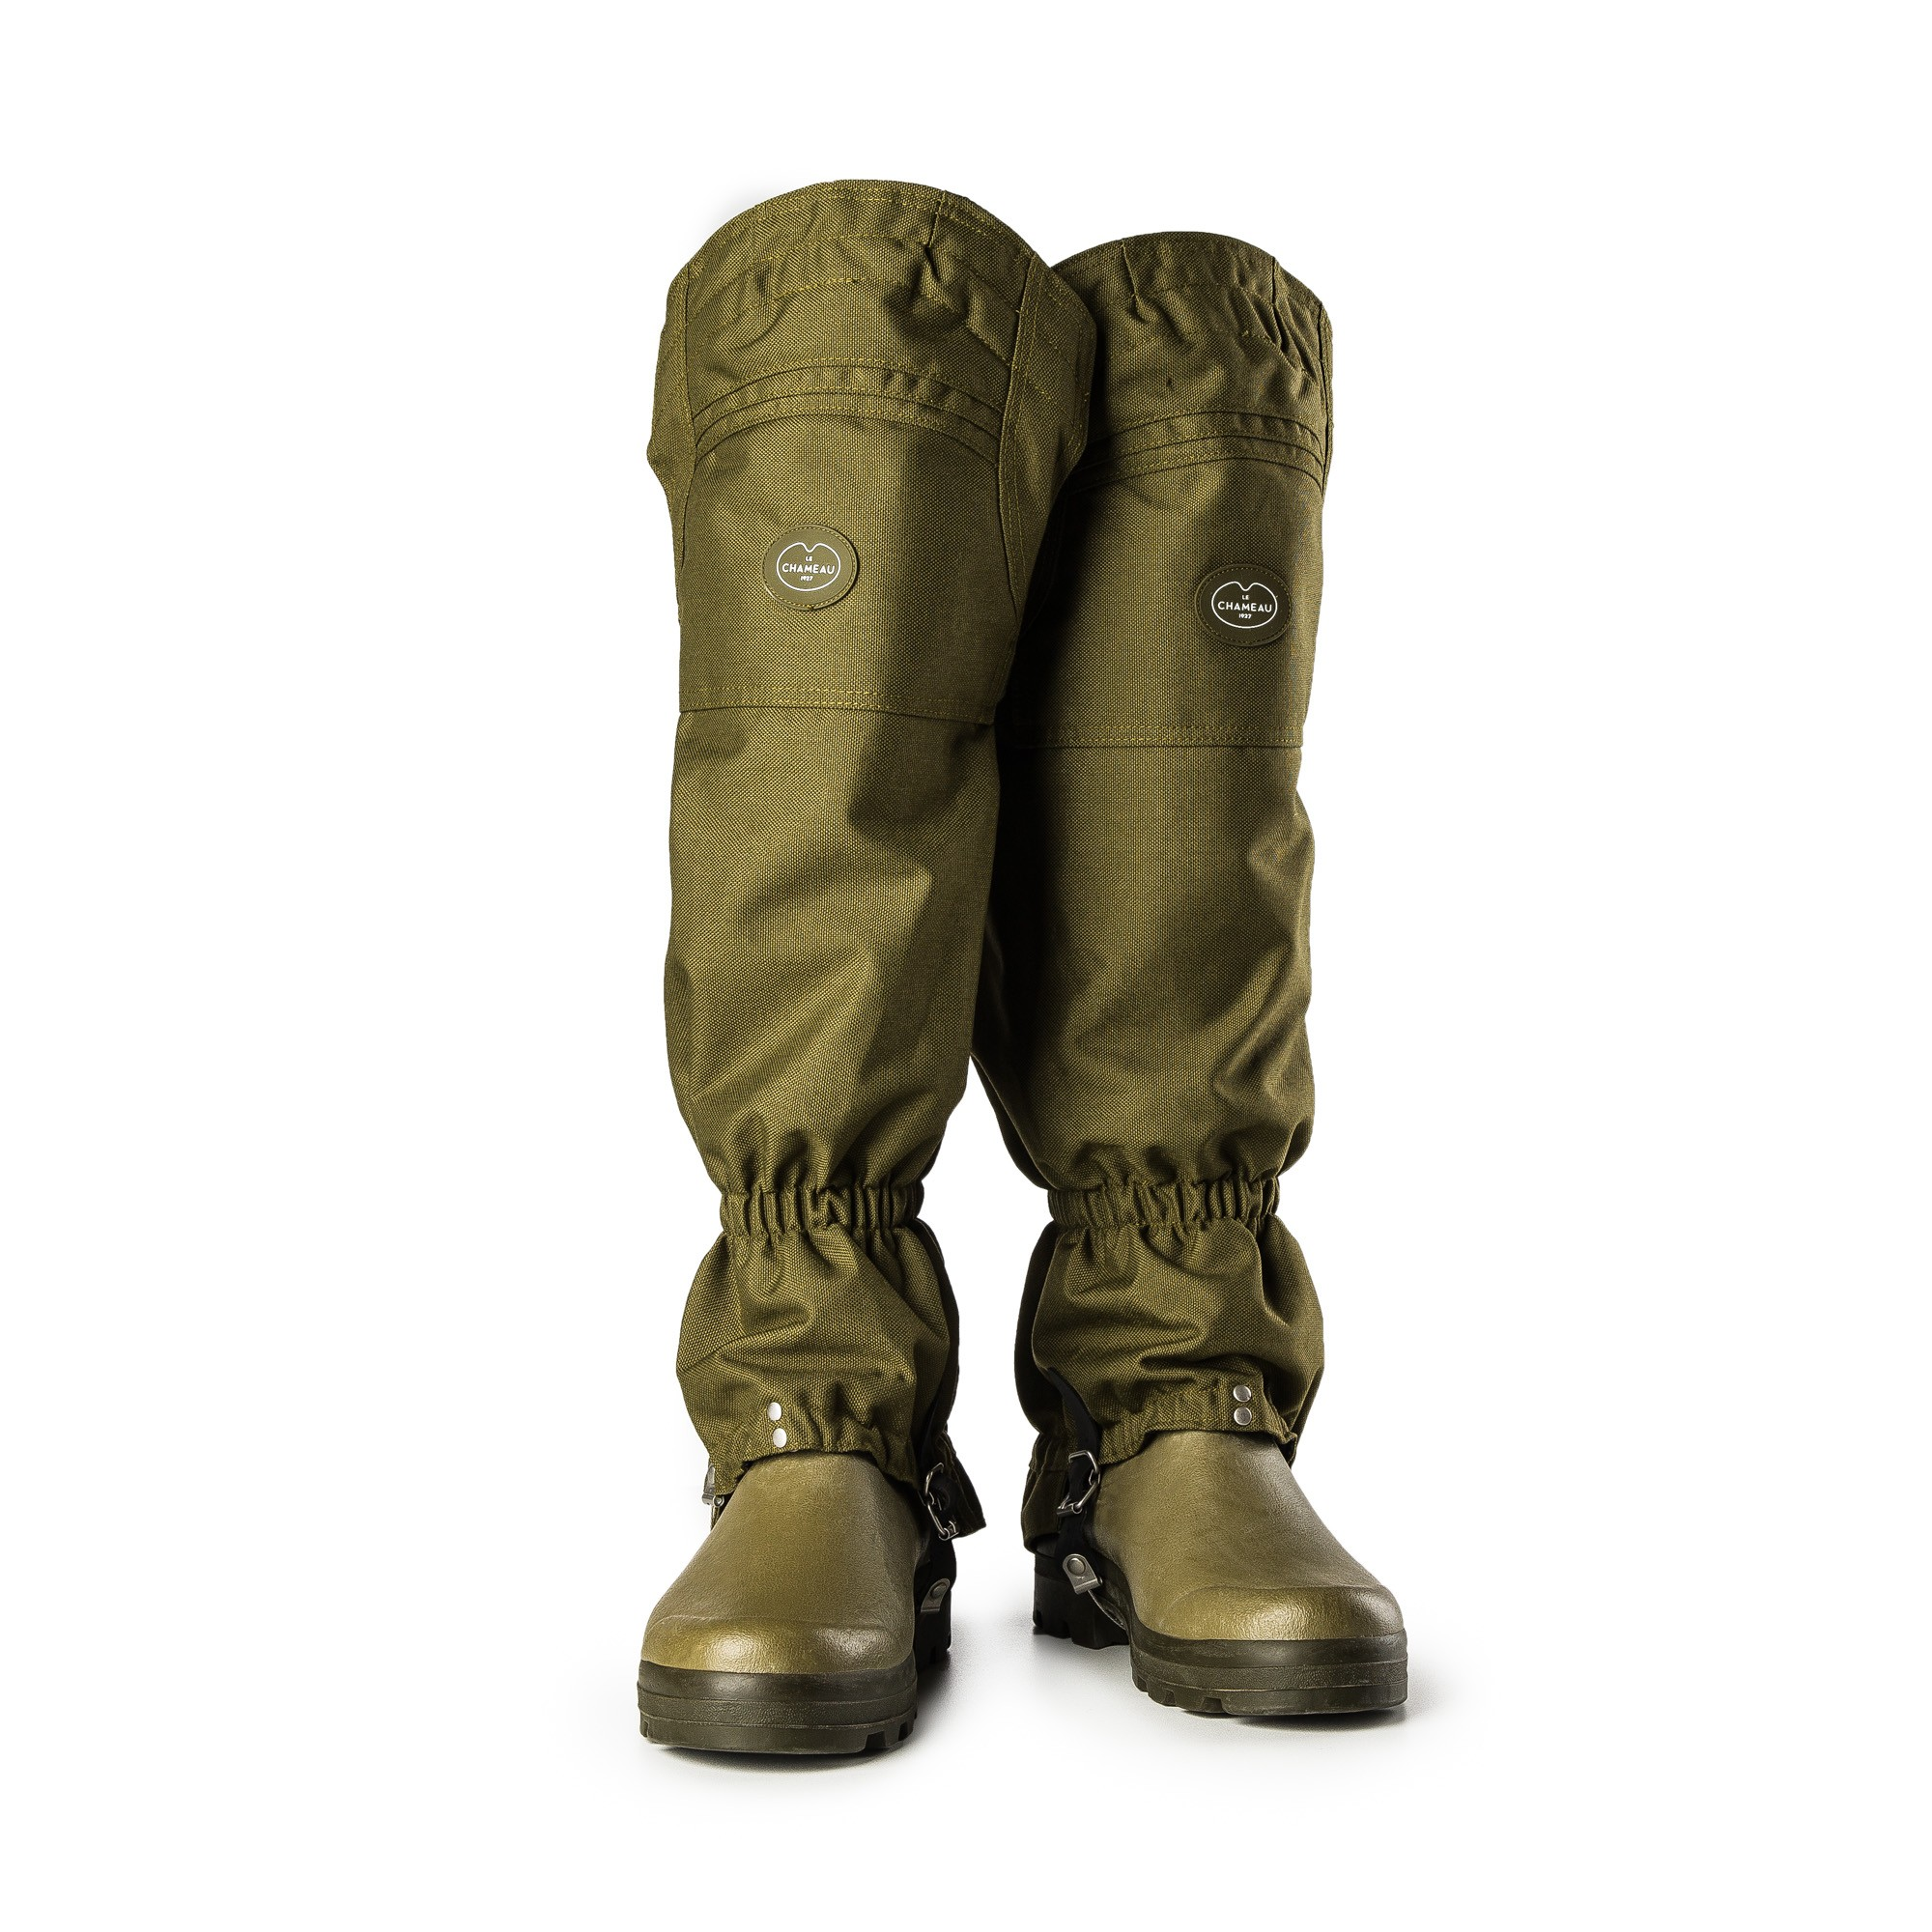 Guetre tech 2 Gaiters